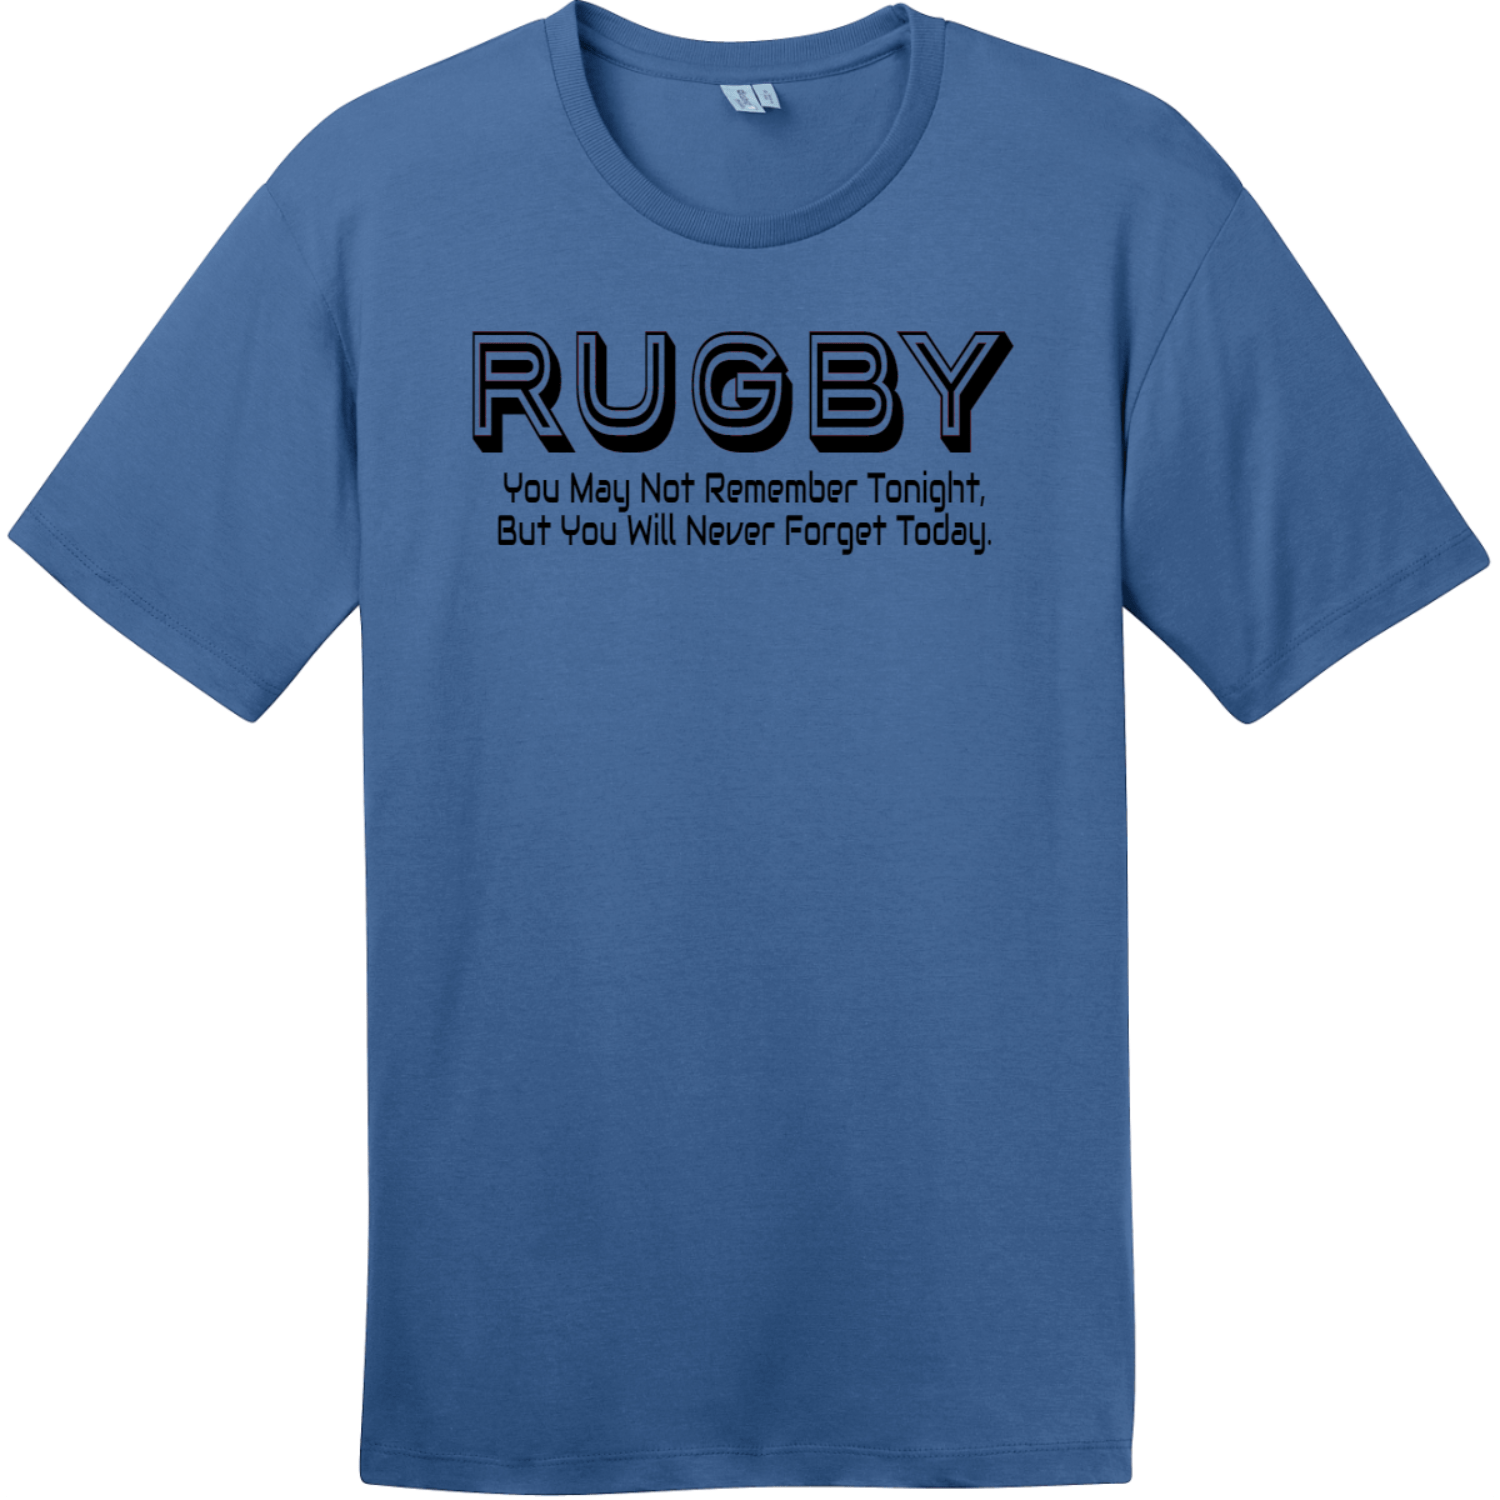 Rugby You May Not Remember Tonight T-Shirt Maritime Blue District Perfect Weight Tee DT104